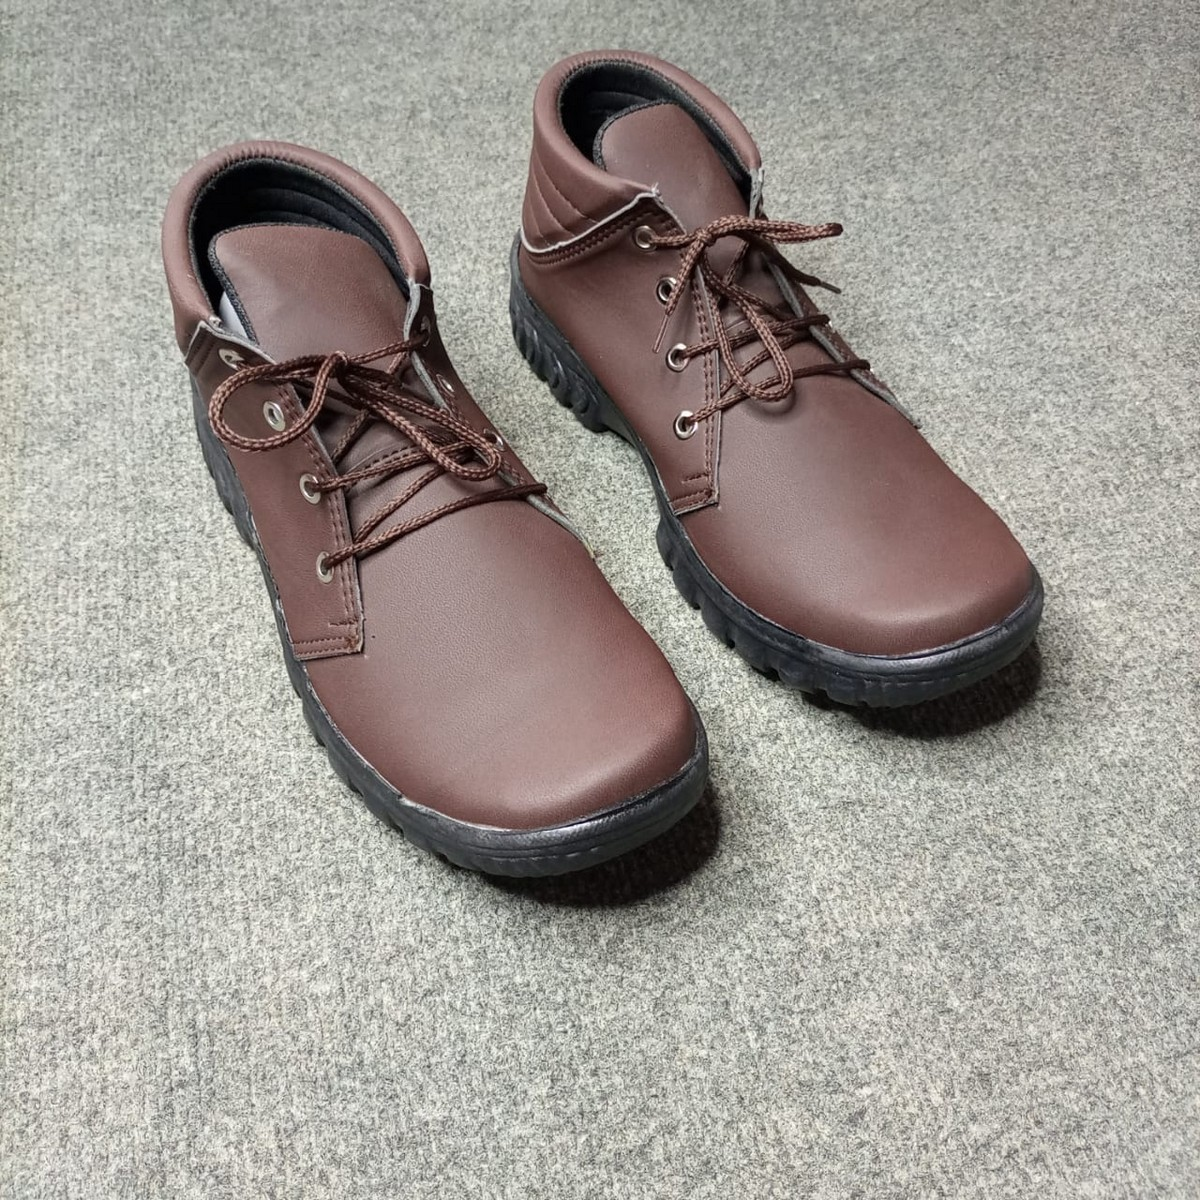 (MK) - Brown Daily Use Long Shoes for Men CTBL1